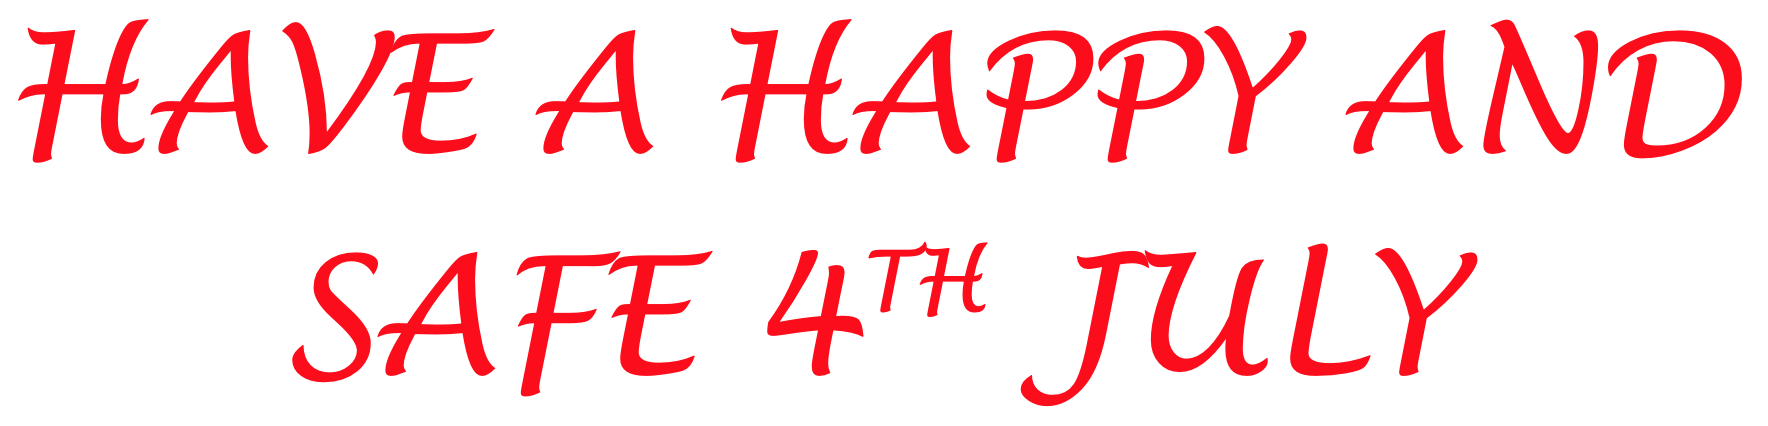 Have a happy and Safe 4th July